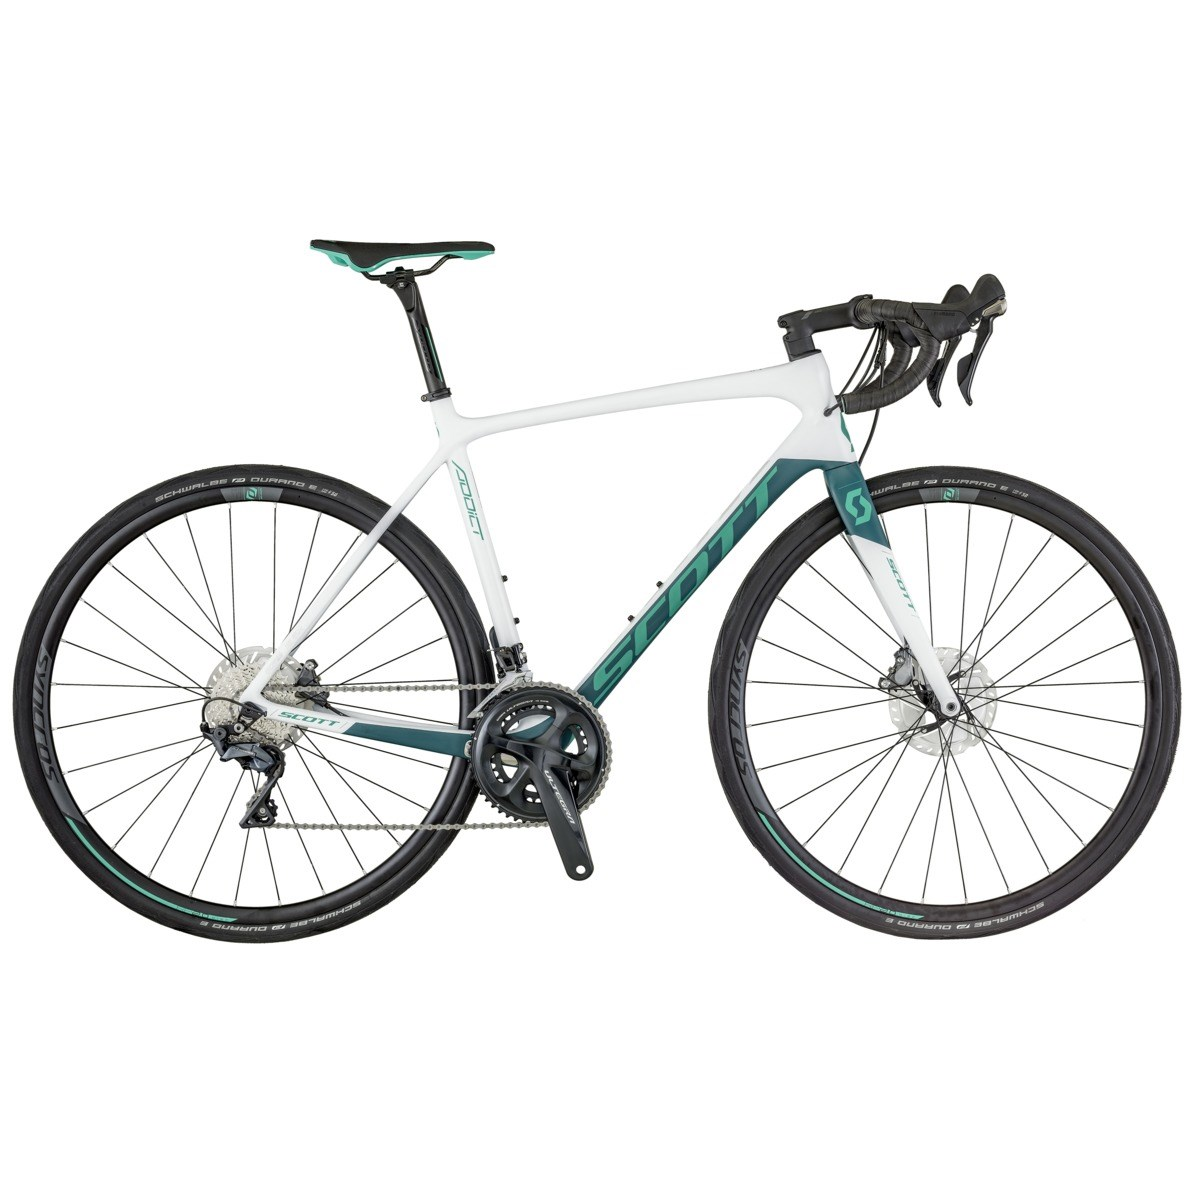 388254c4a20 Scott Contessa Addict 15 Disc Road Bike 2018 White. 0 (Be the first to add  a review!)